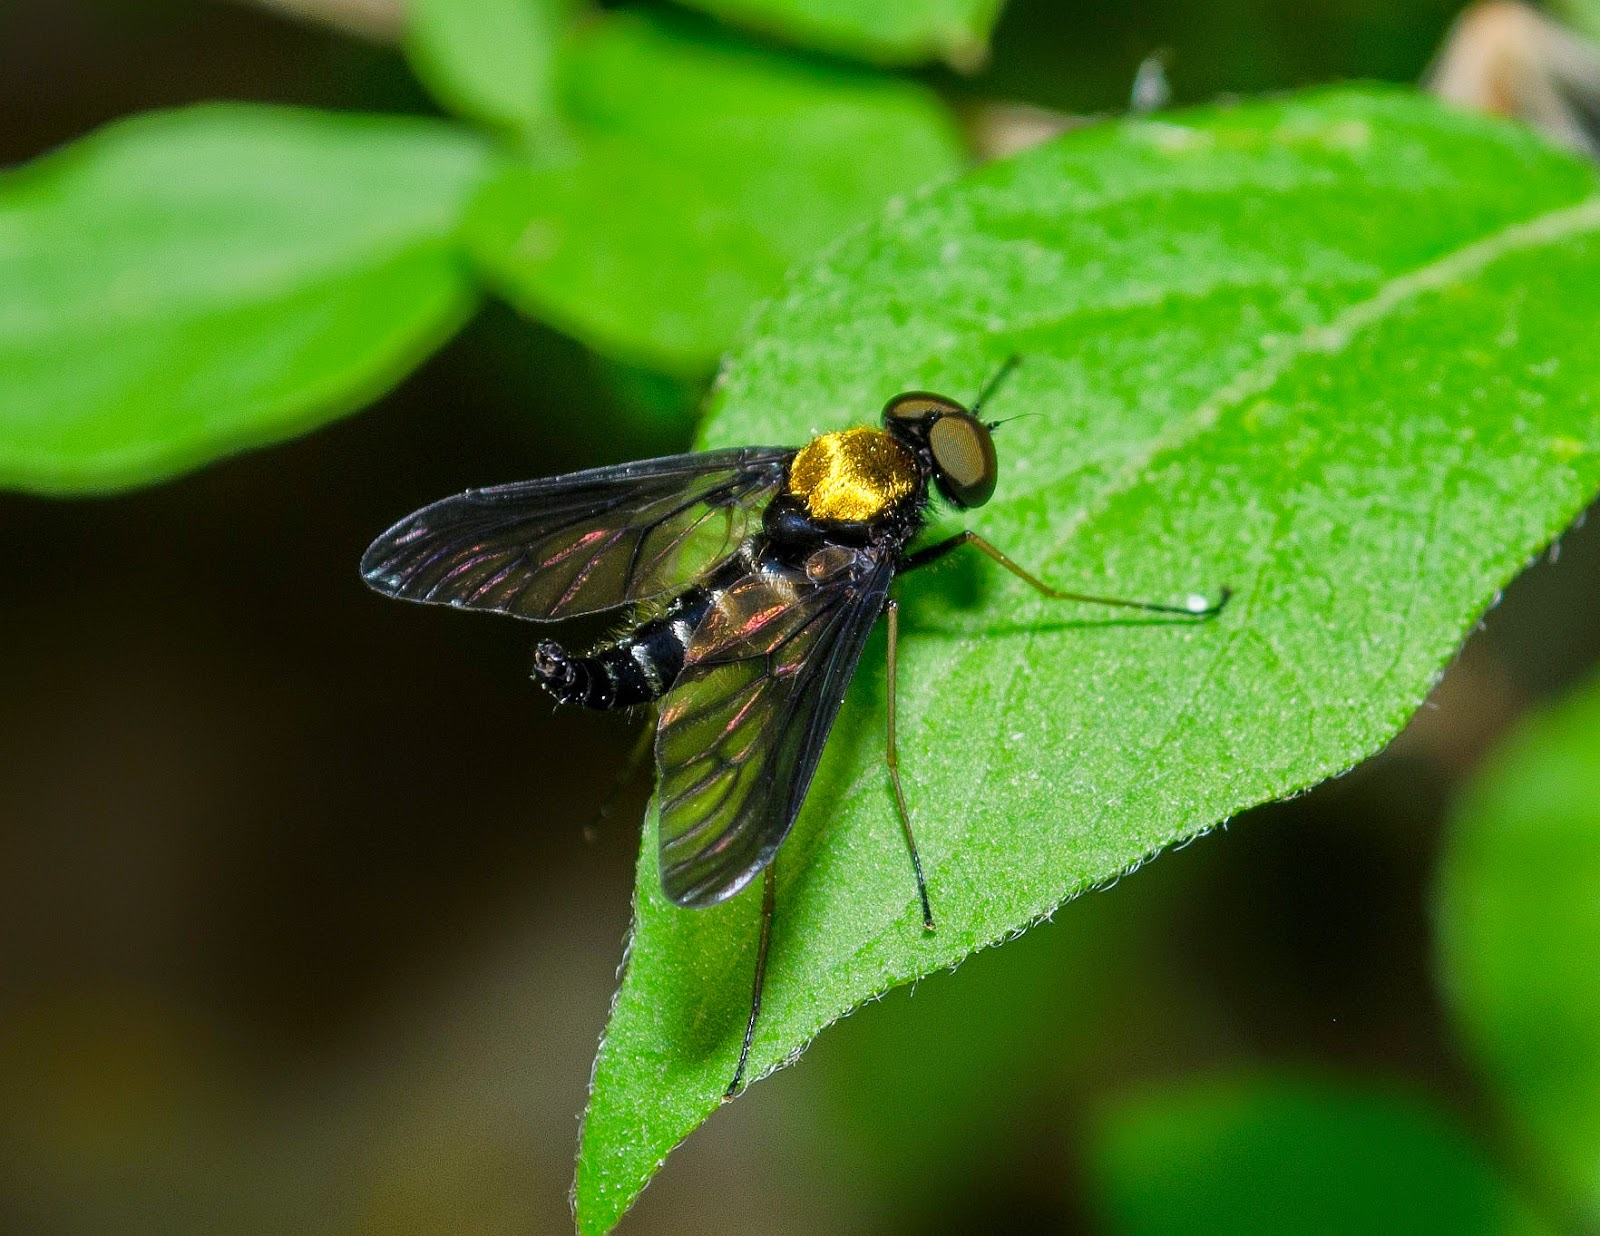 Golden-Backed Snipe Fly, Chrysopilus thoracicus